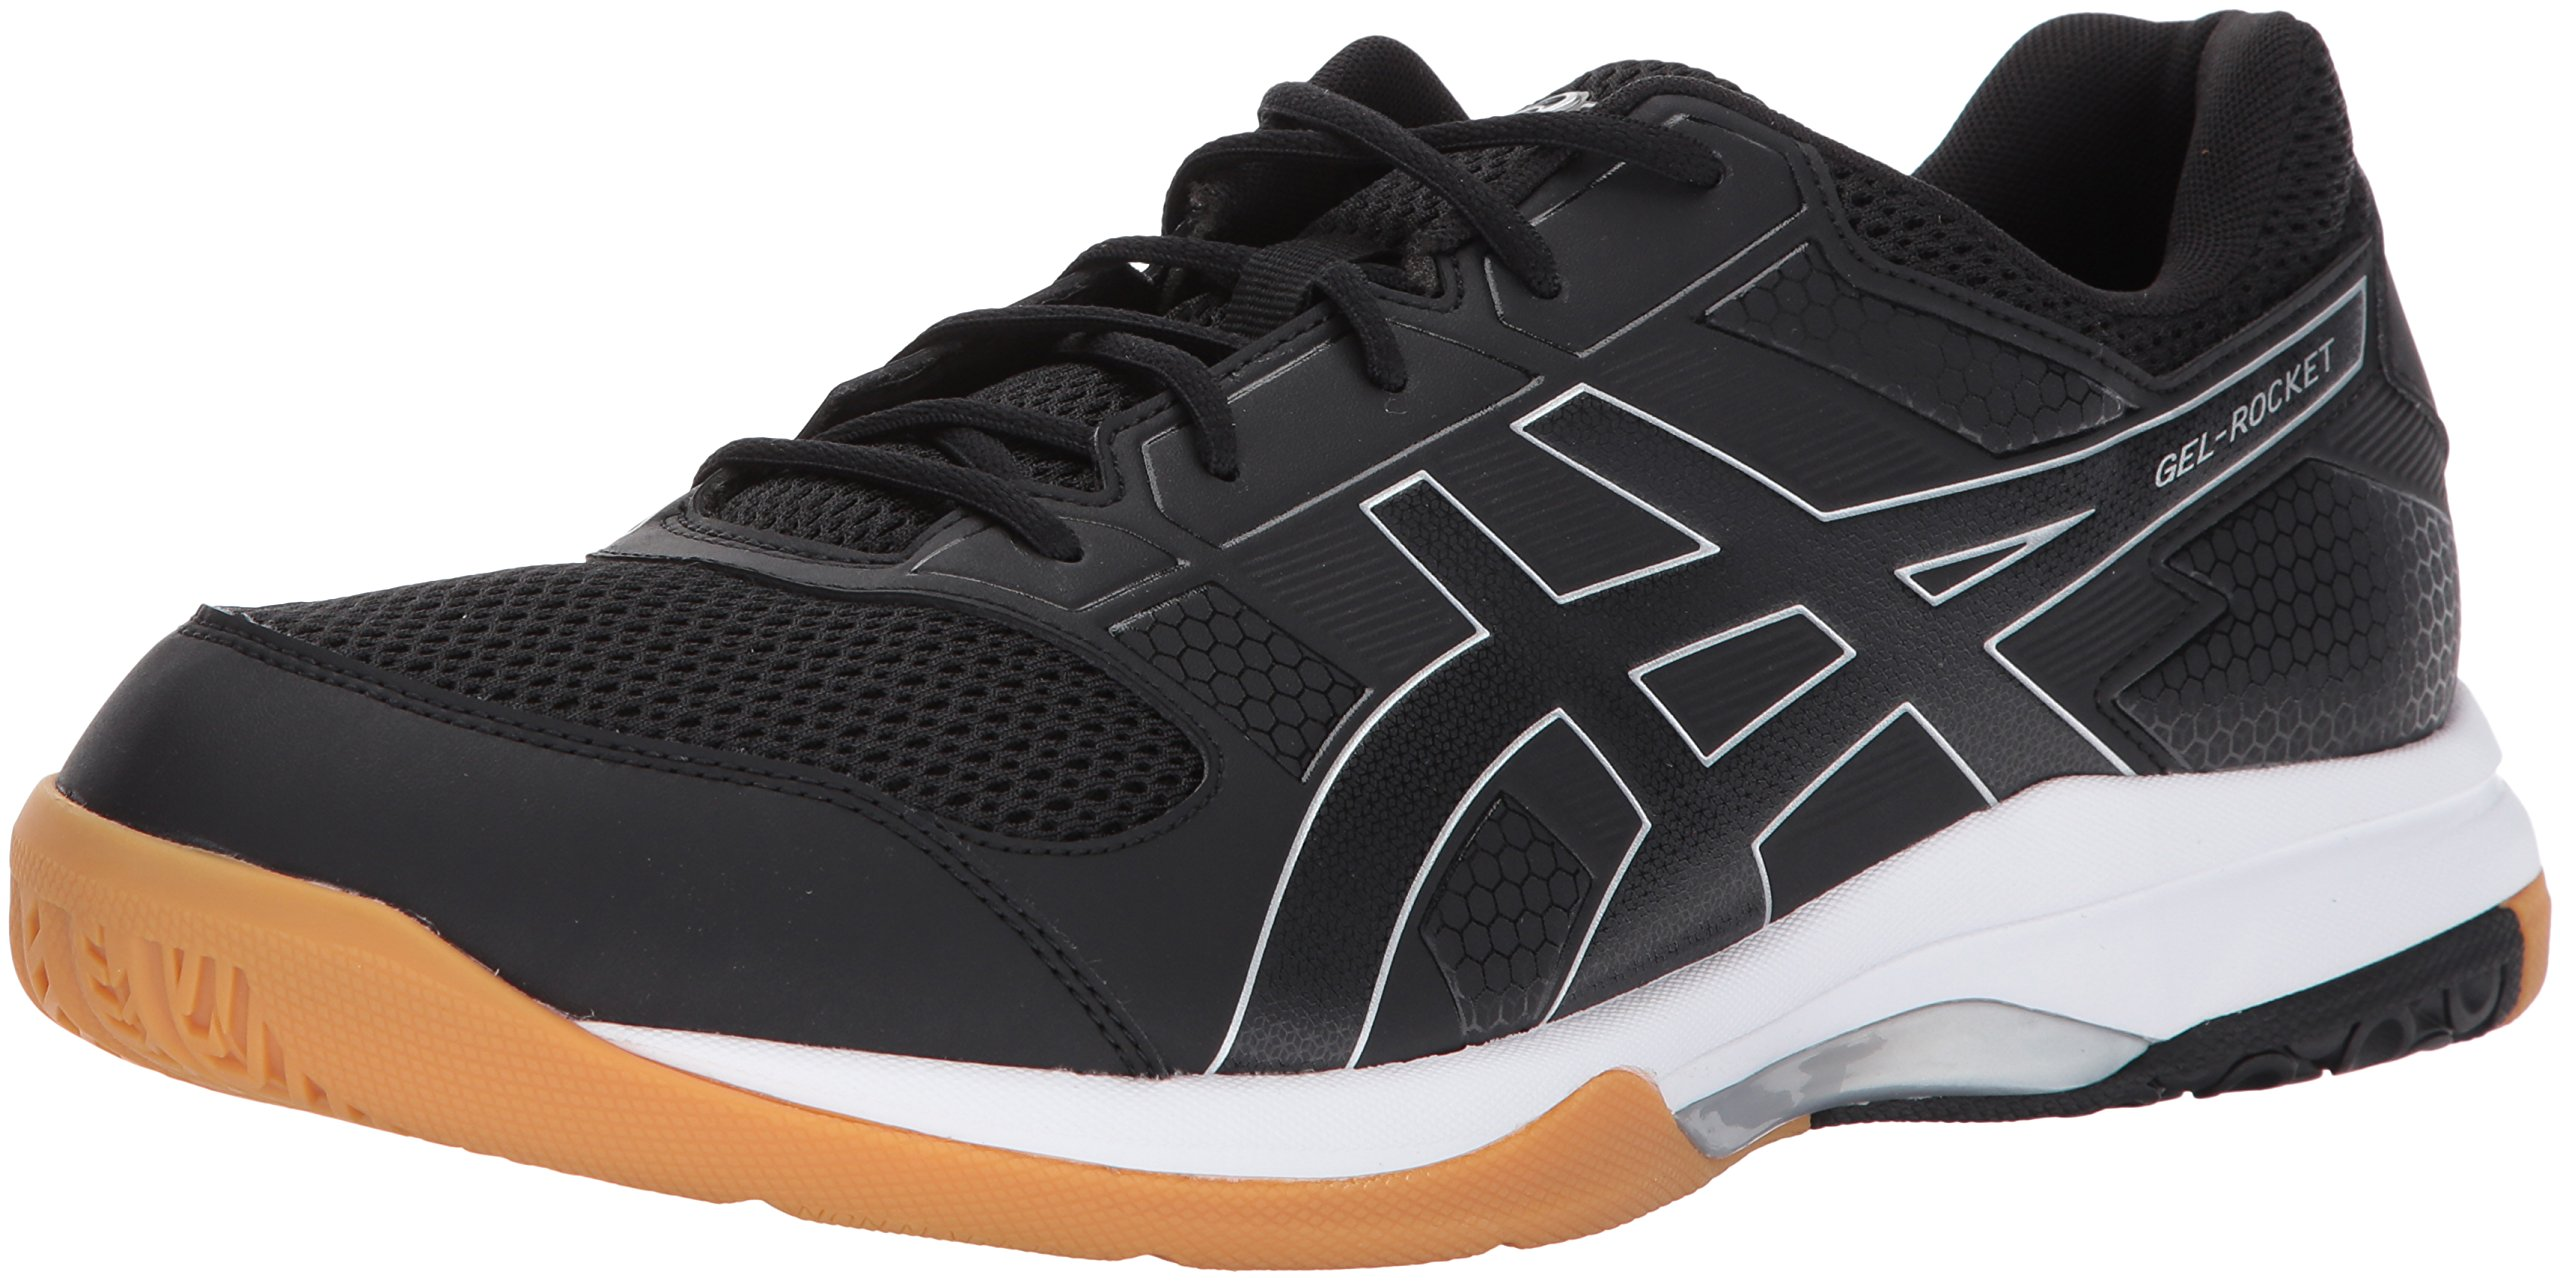 ASICS Mens Gel-Rocket 8 Volleyball Shoe Black/White, 7.5 Medium US by ASICS (Image #1)